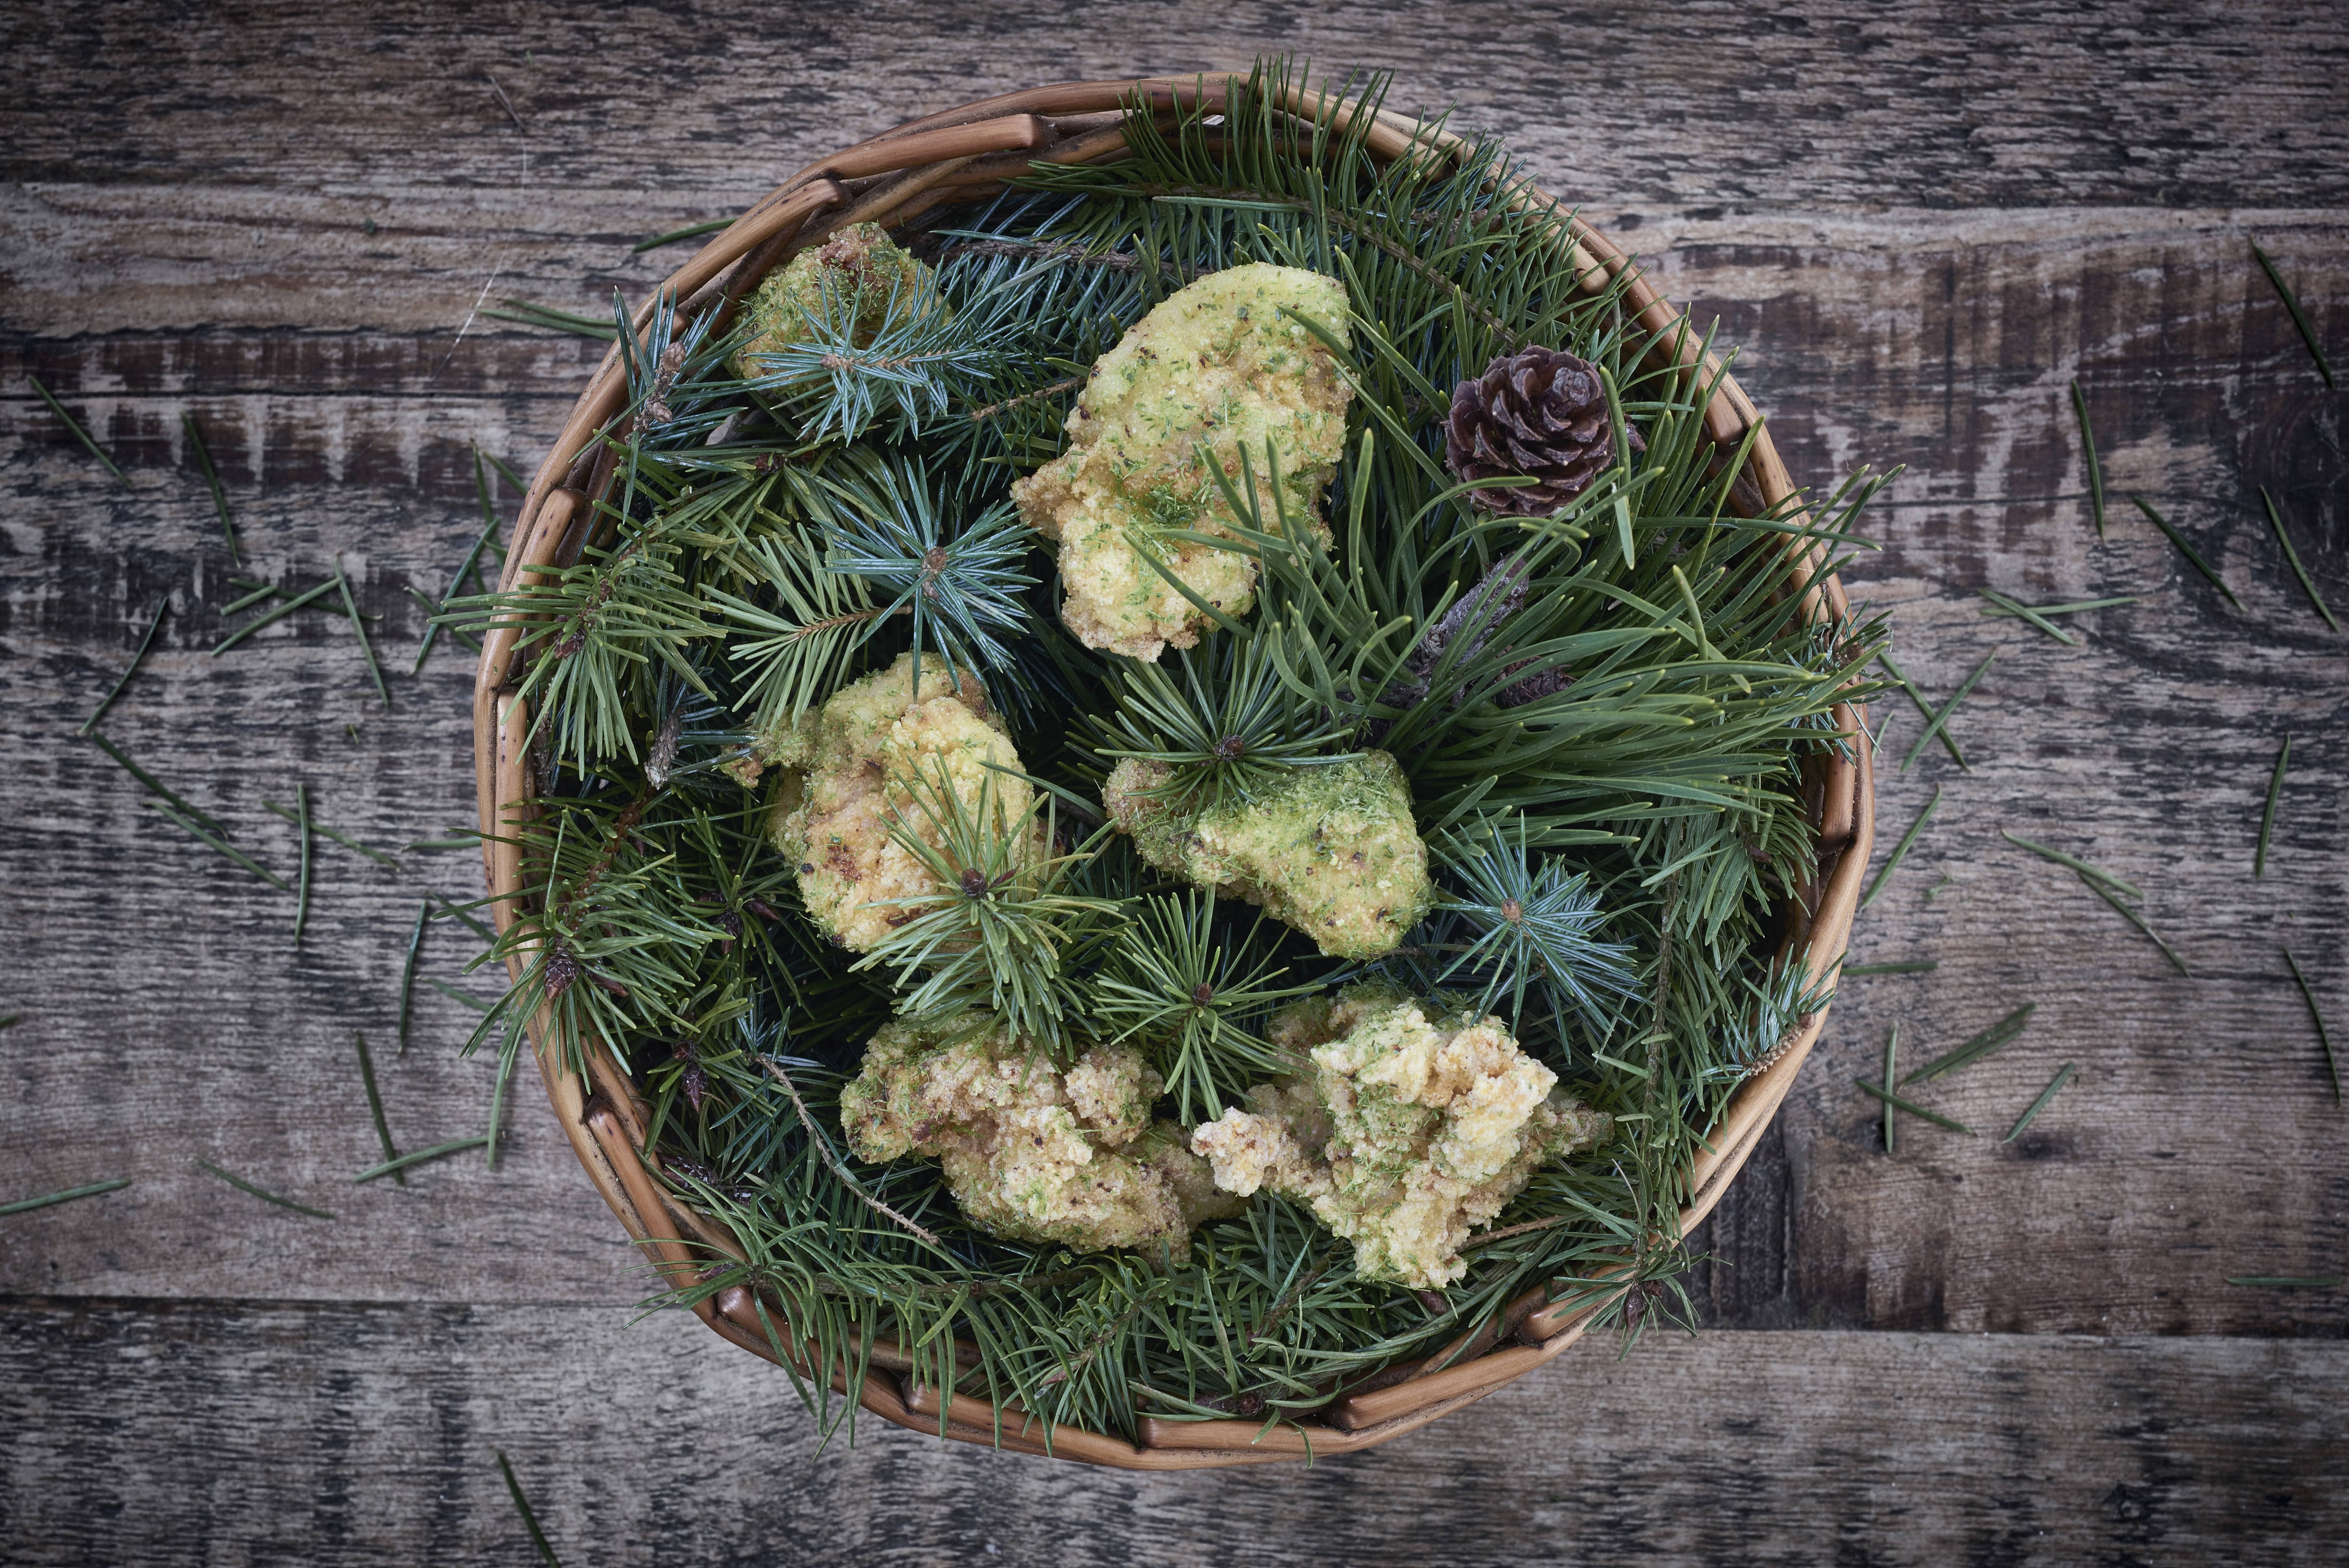 Pine salt buttermilk fried chicken at Michelin-starred The Clove Club in Shoreditch, that forms part of the best 24 hour restaurant travel itinerary for London — where to eat with one day in the city